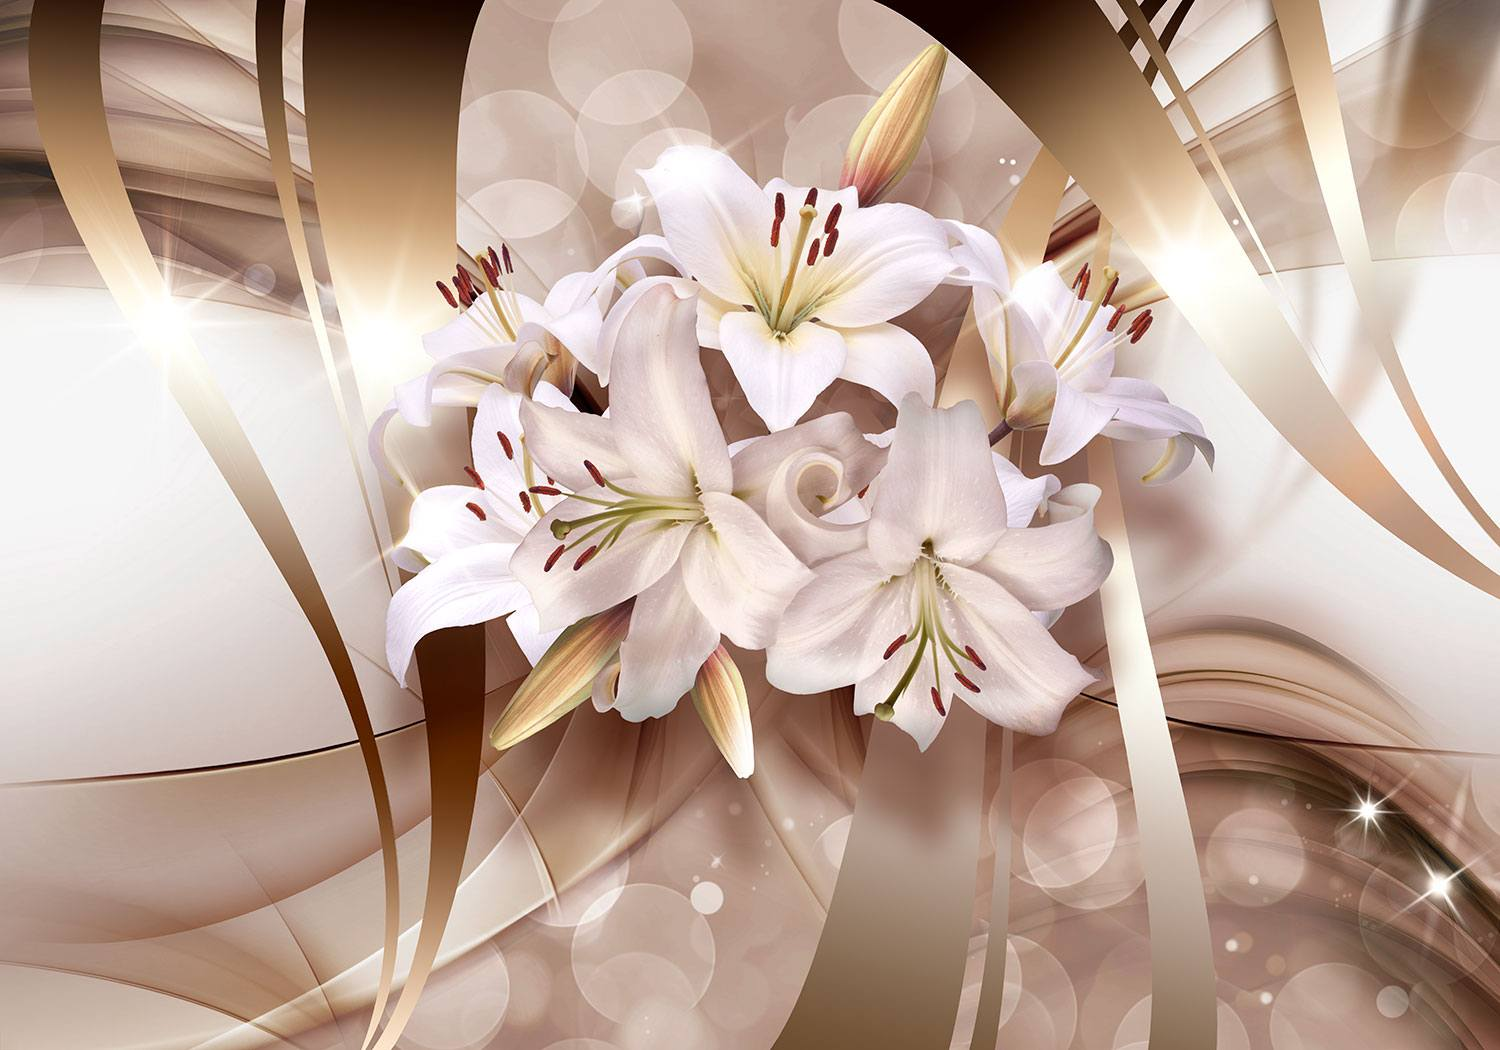 Wall Murals: Lilies of peace